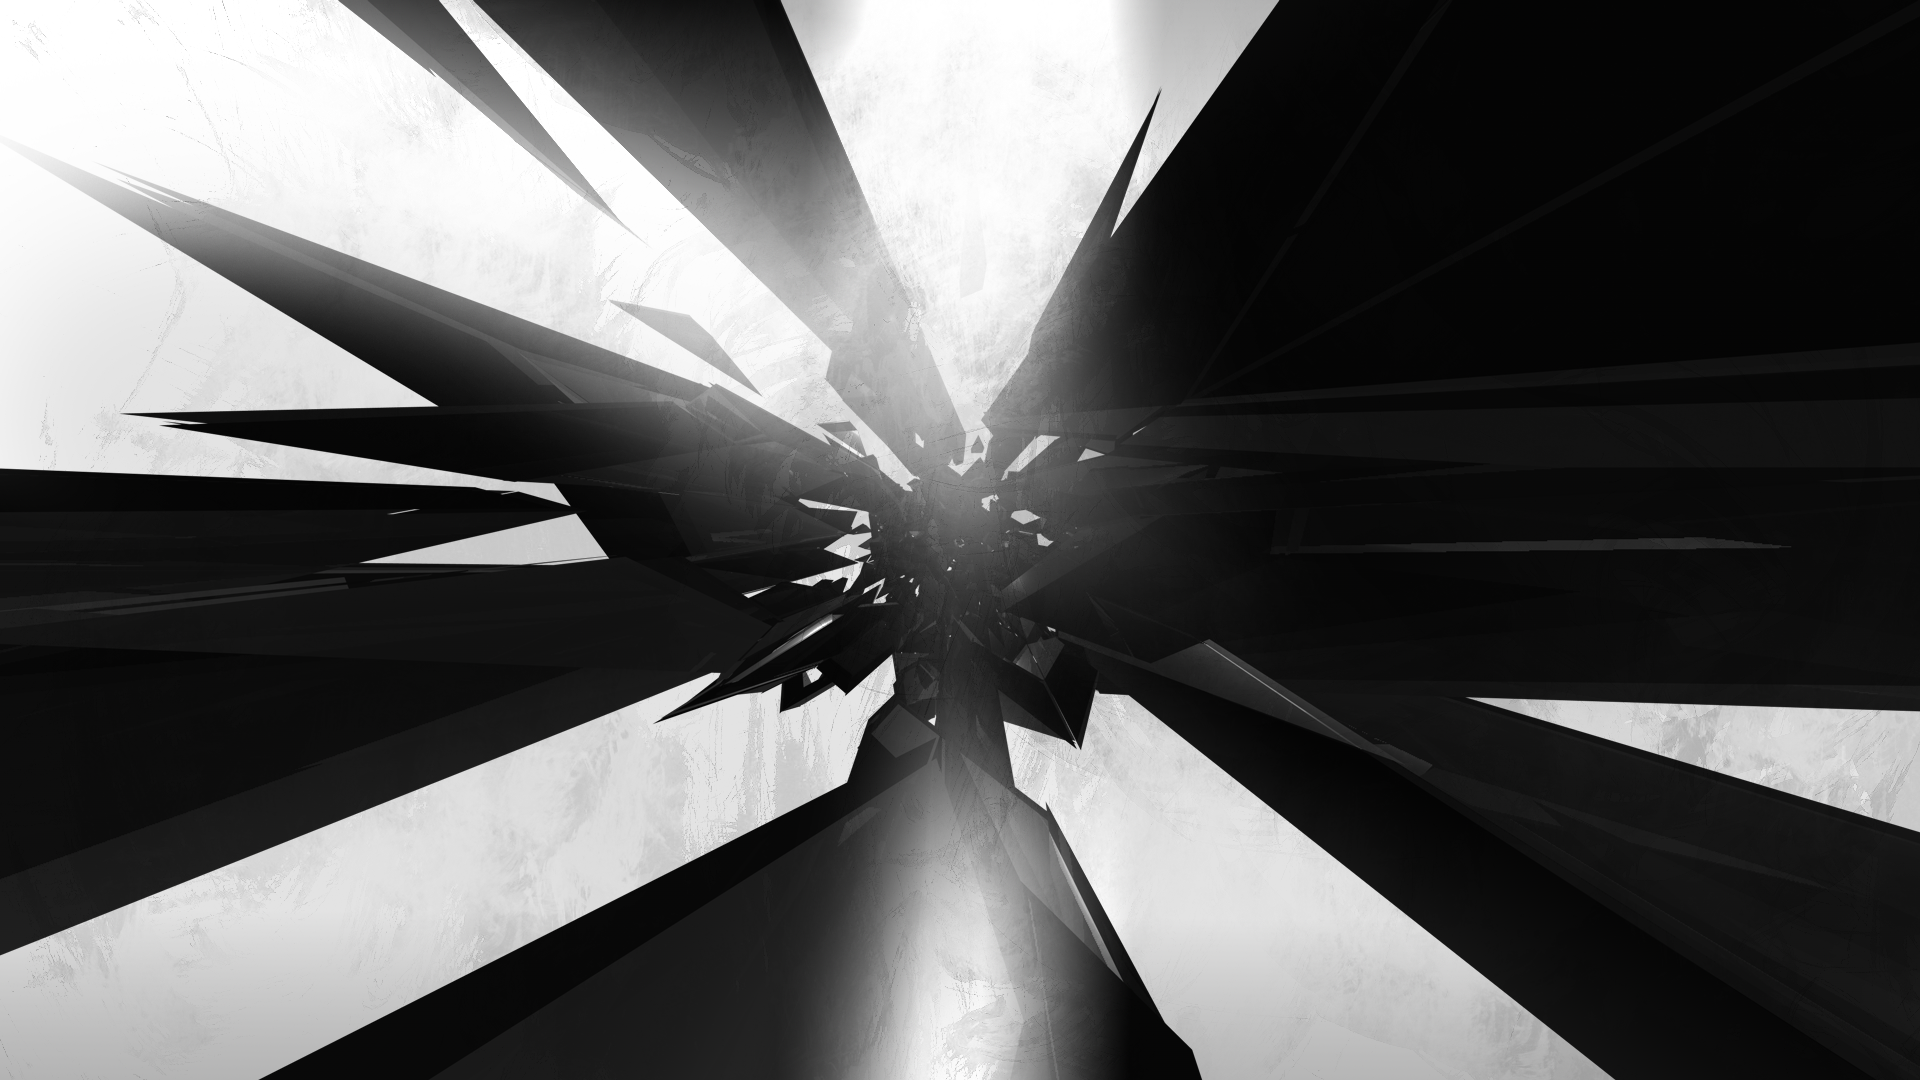 Another Black And White Abstract Wallpaper by TomSimo on ...